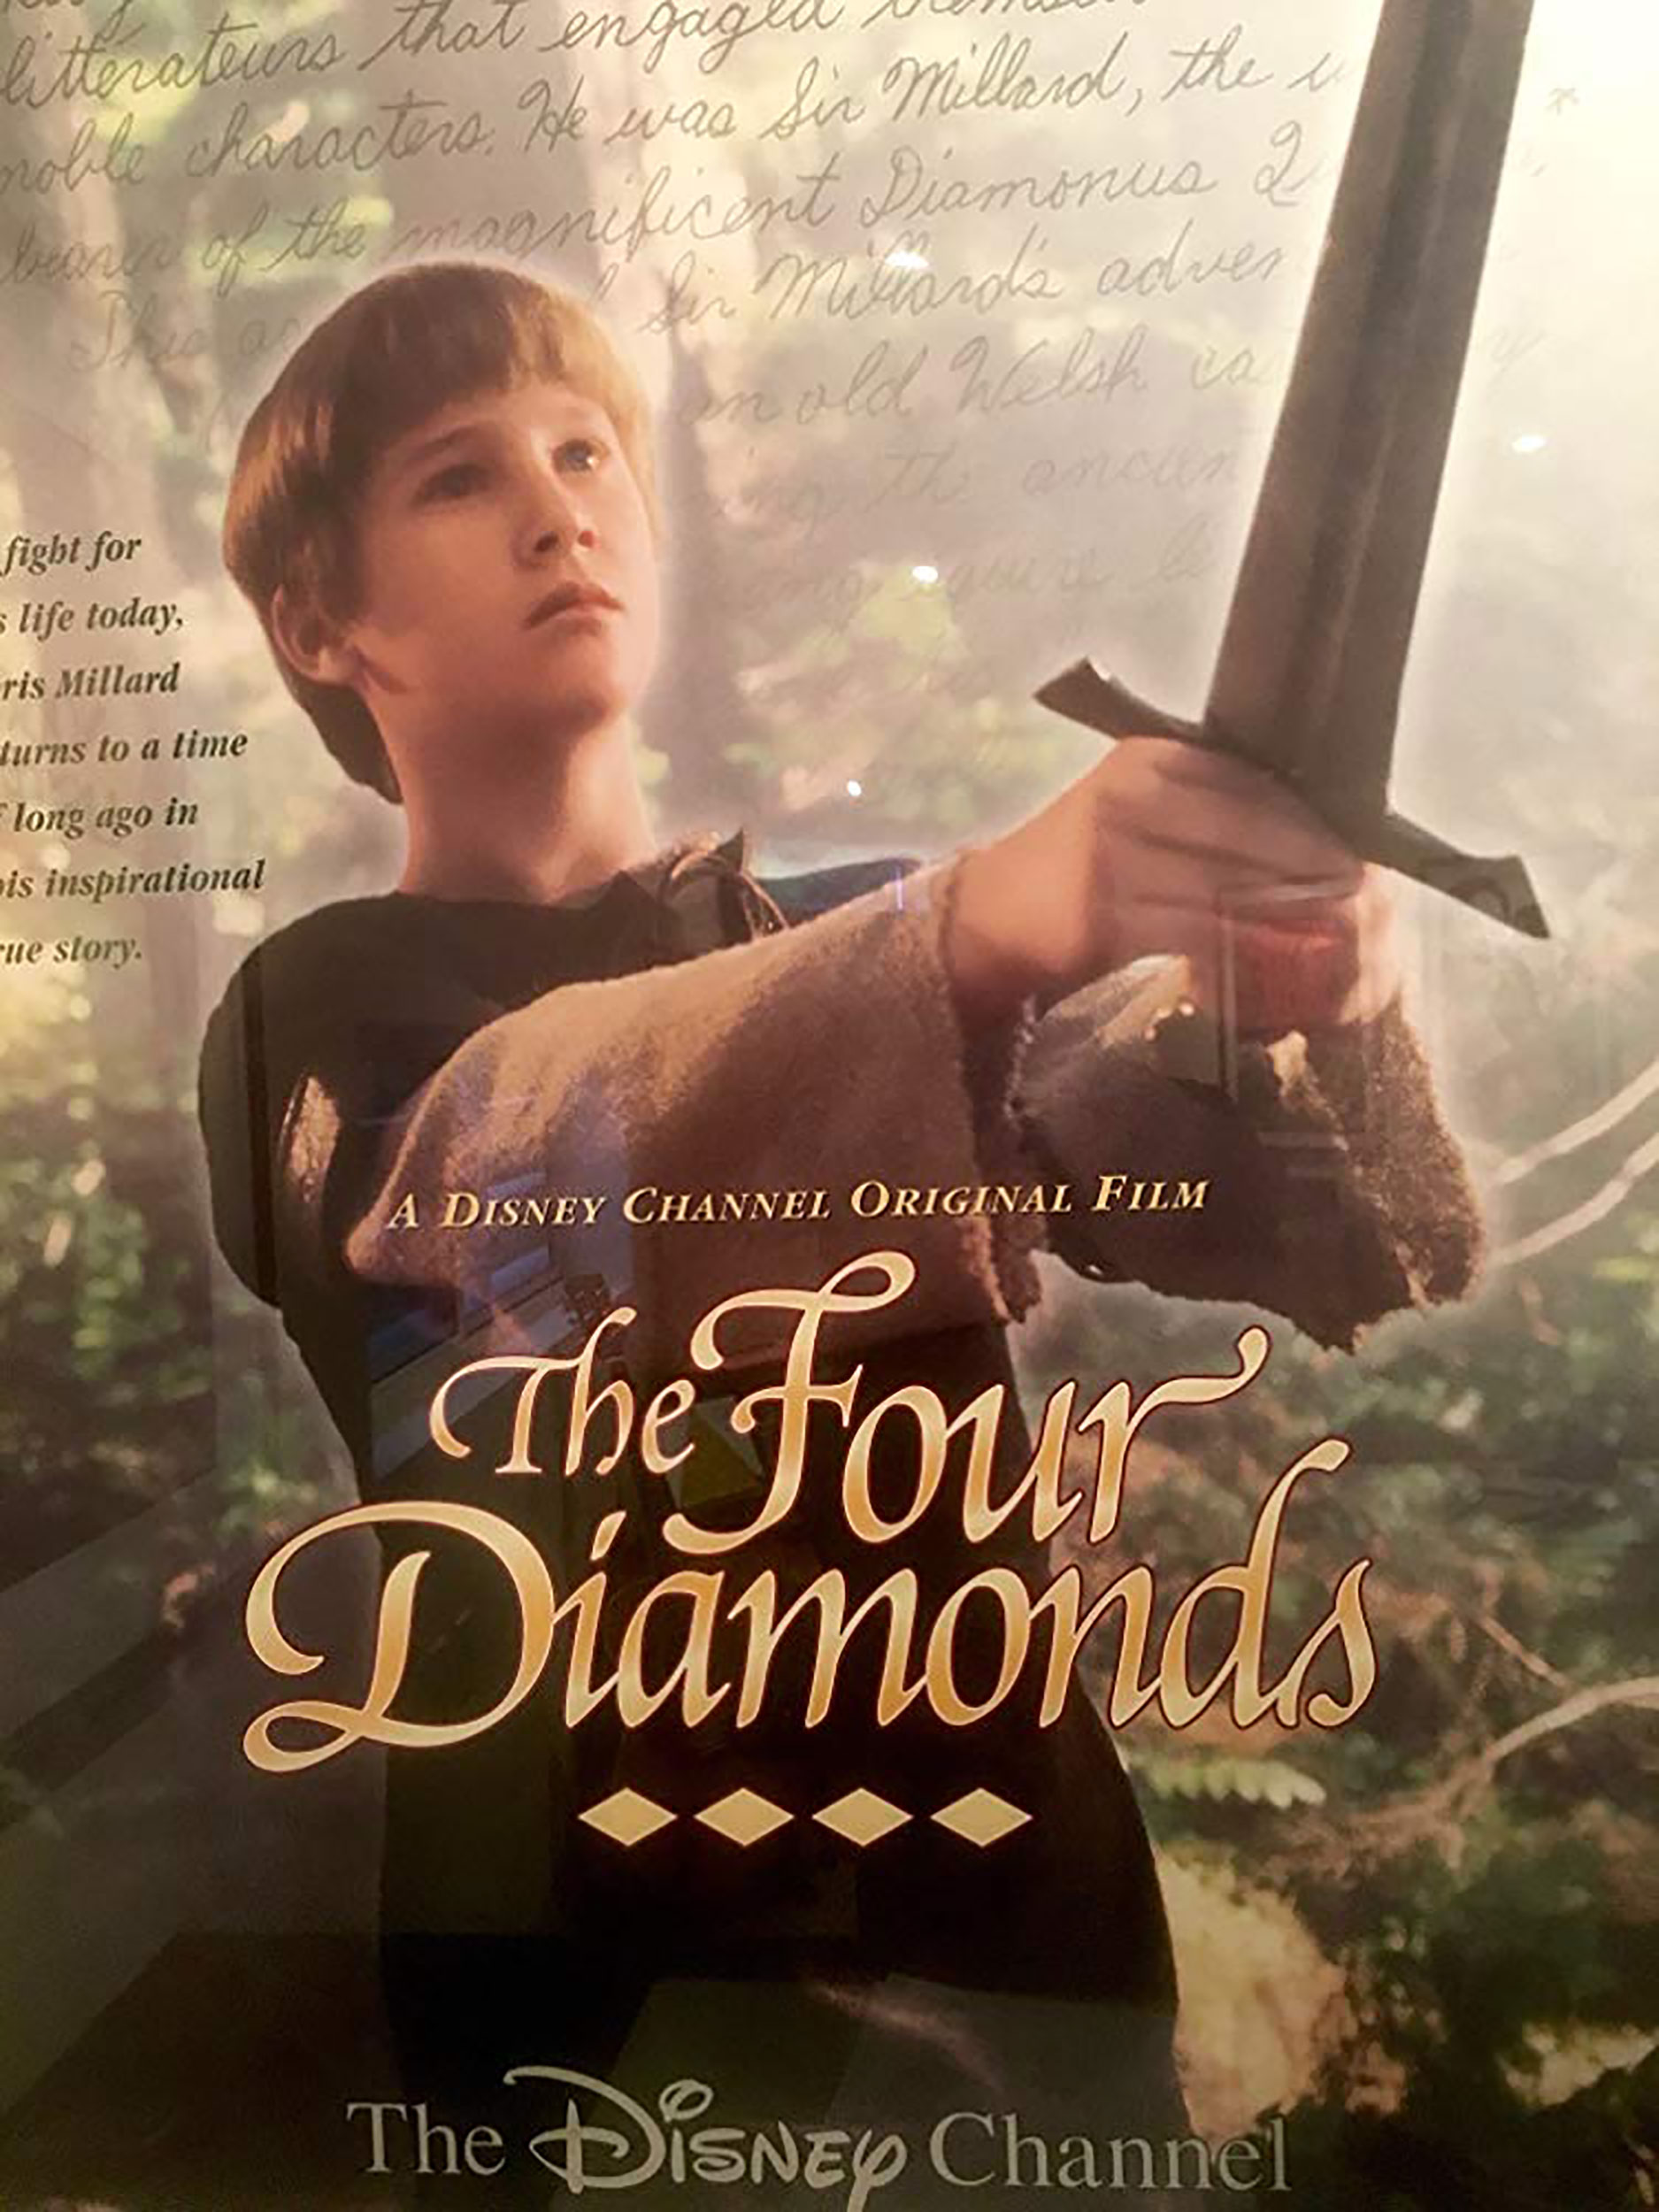 Affiche Poster intrépide chevalier millard four diamonds disney channel